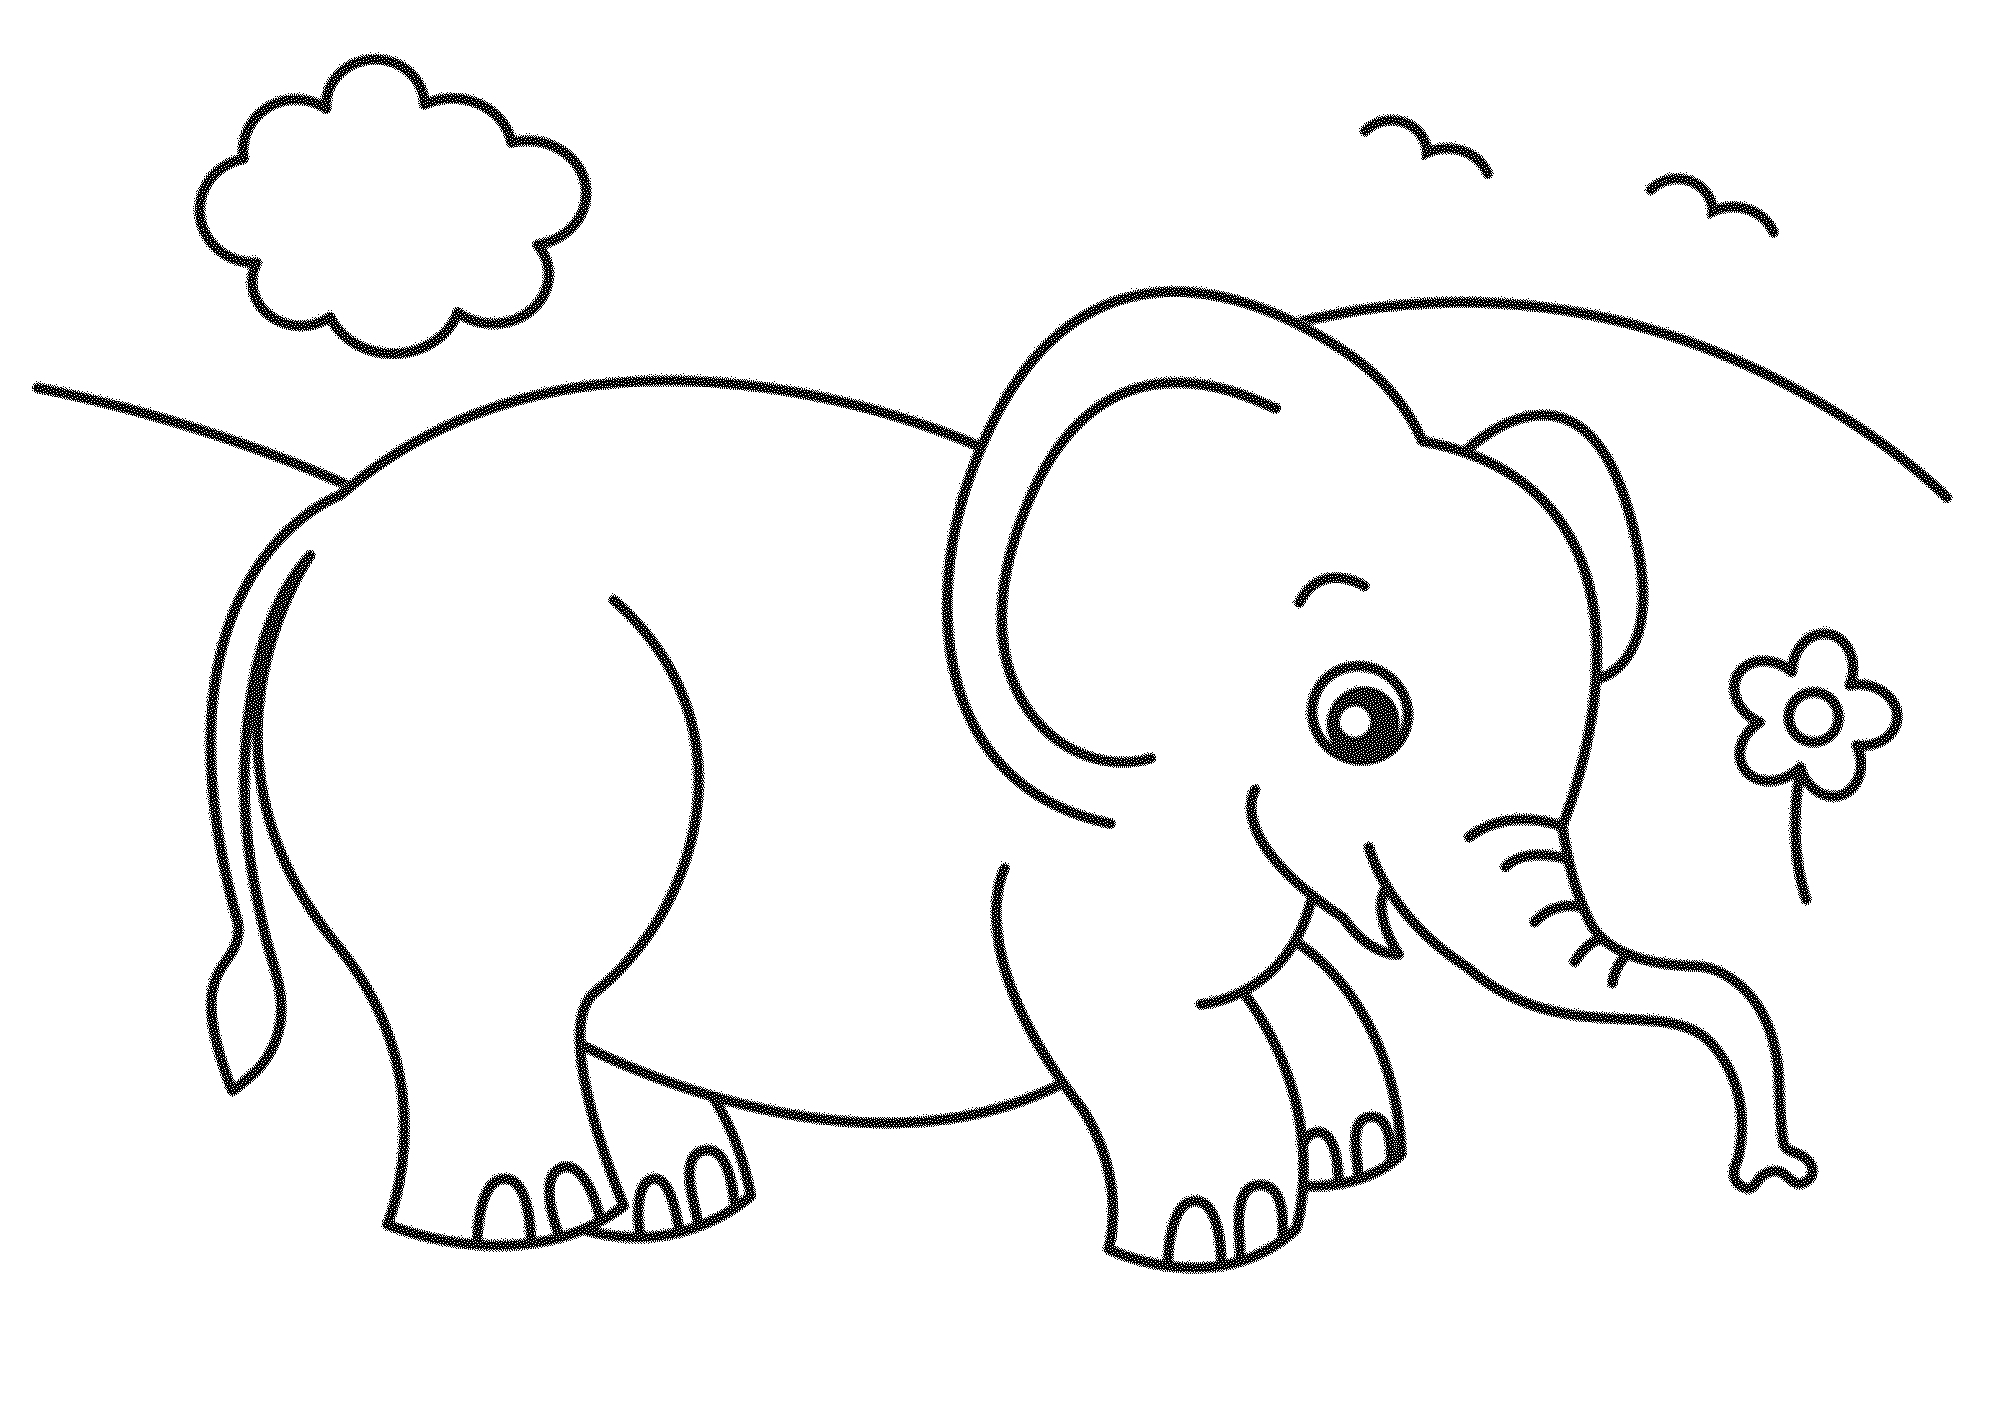 colouring pictures of elephant print download teaching kids through elephant coloring pictures of colouring elephant